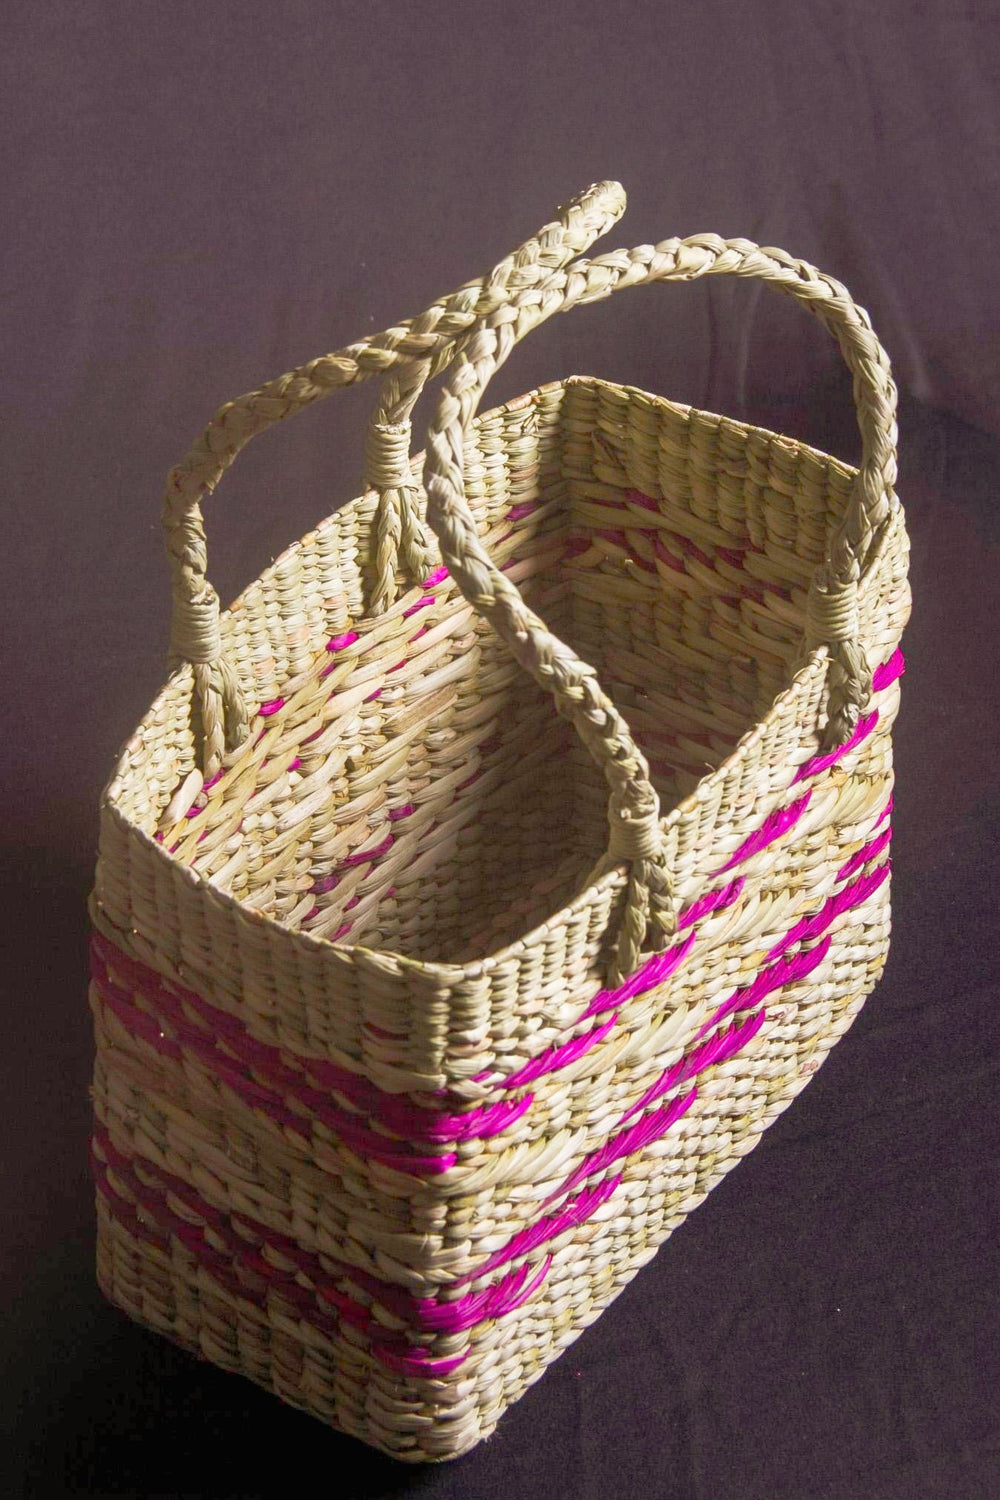 Shopping bag with handle and pink color weave motif